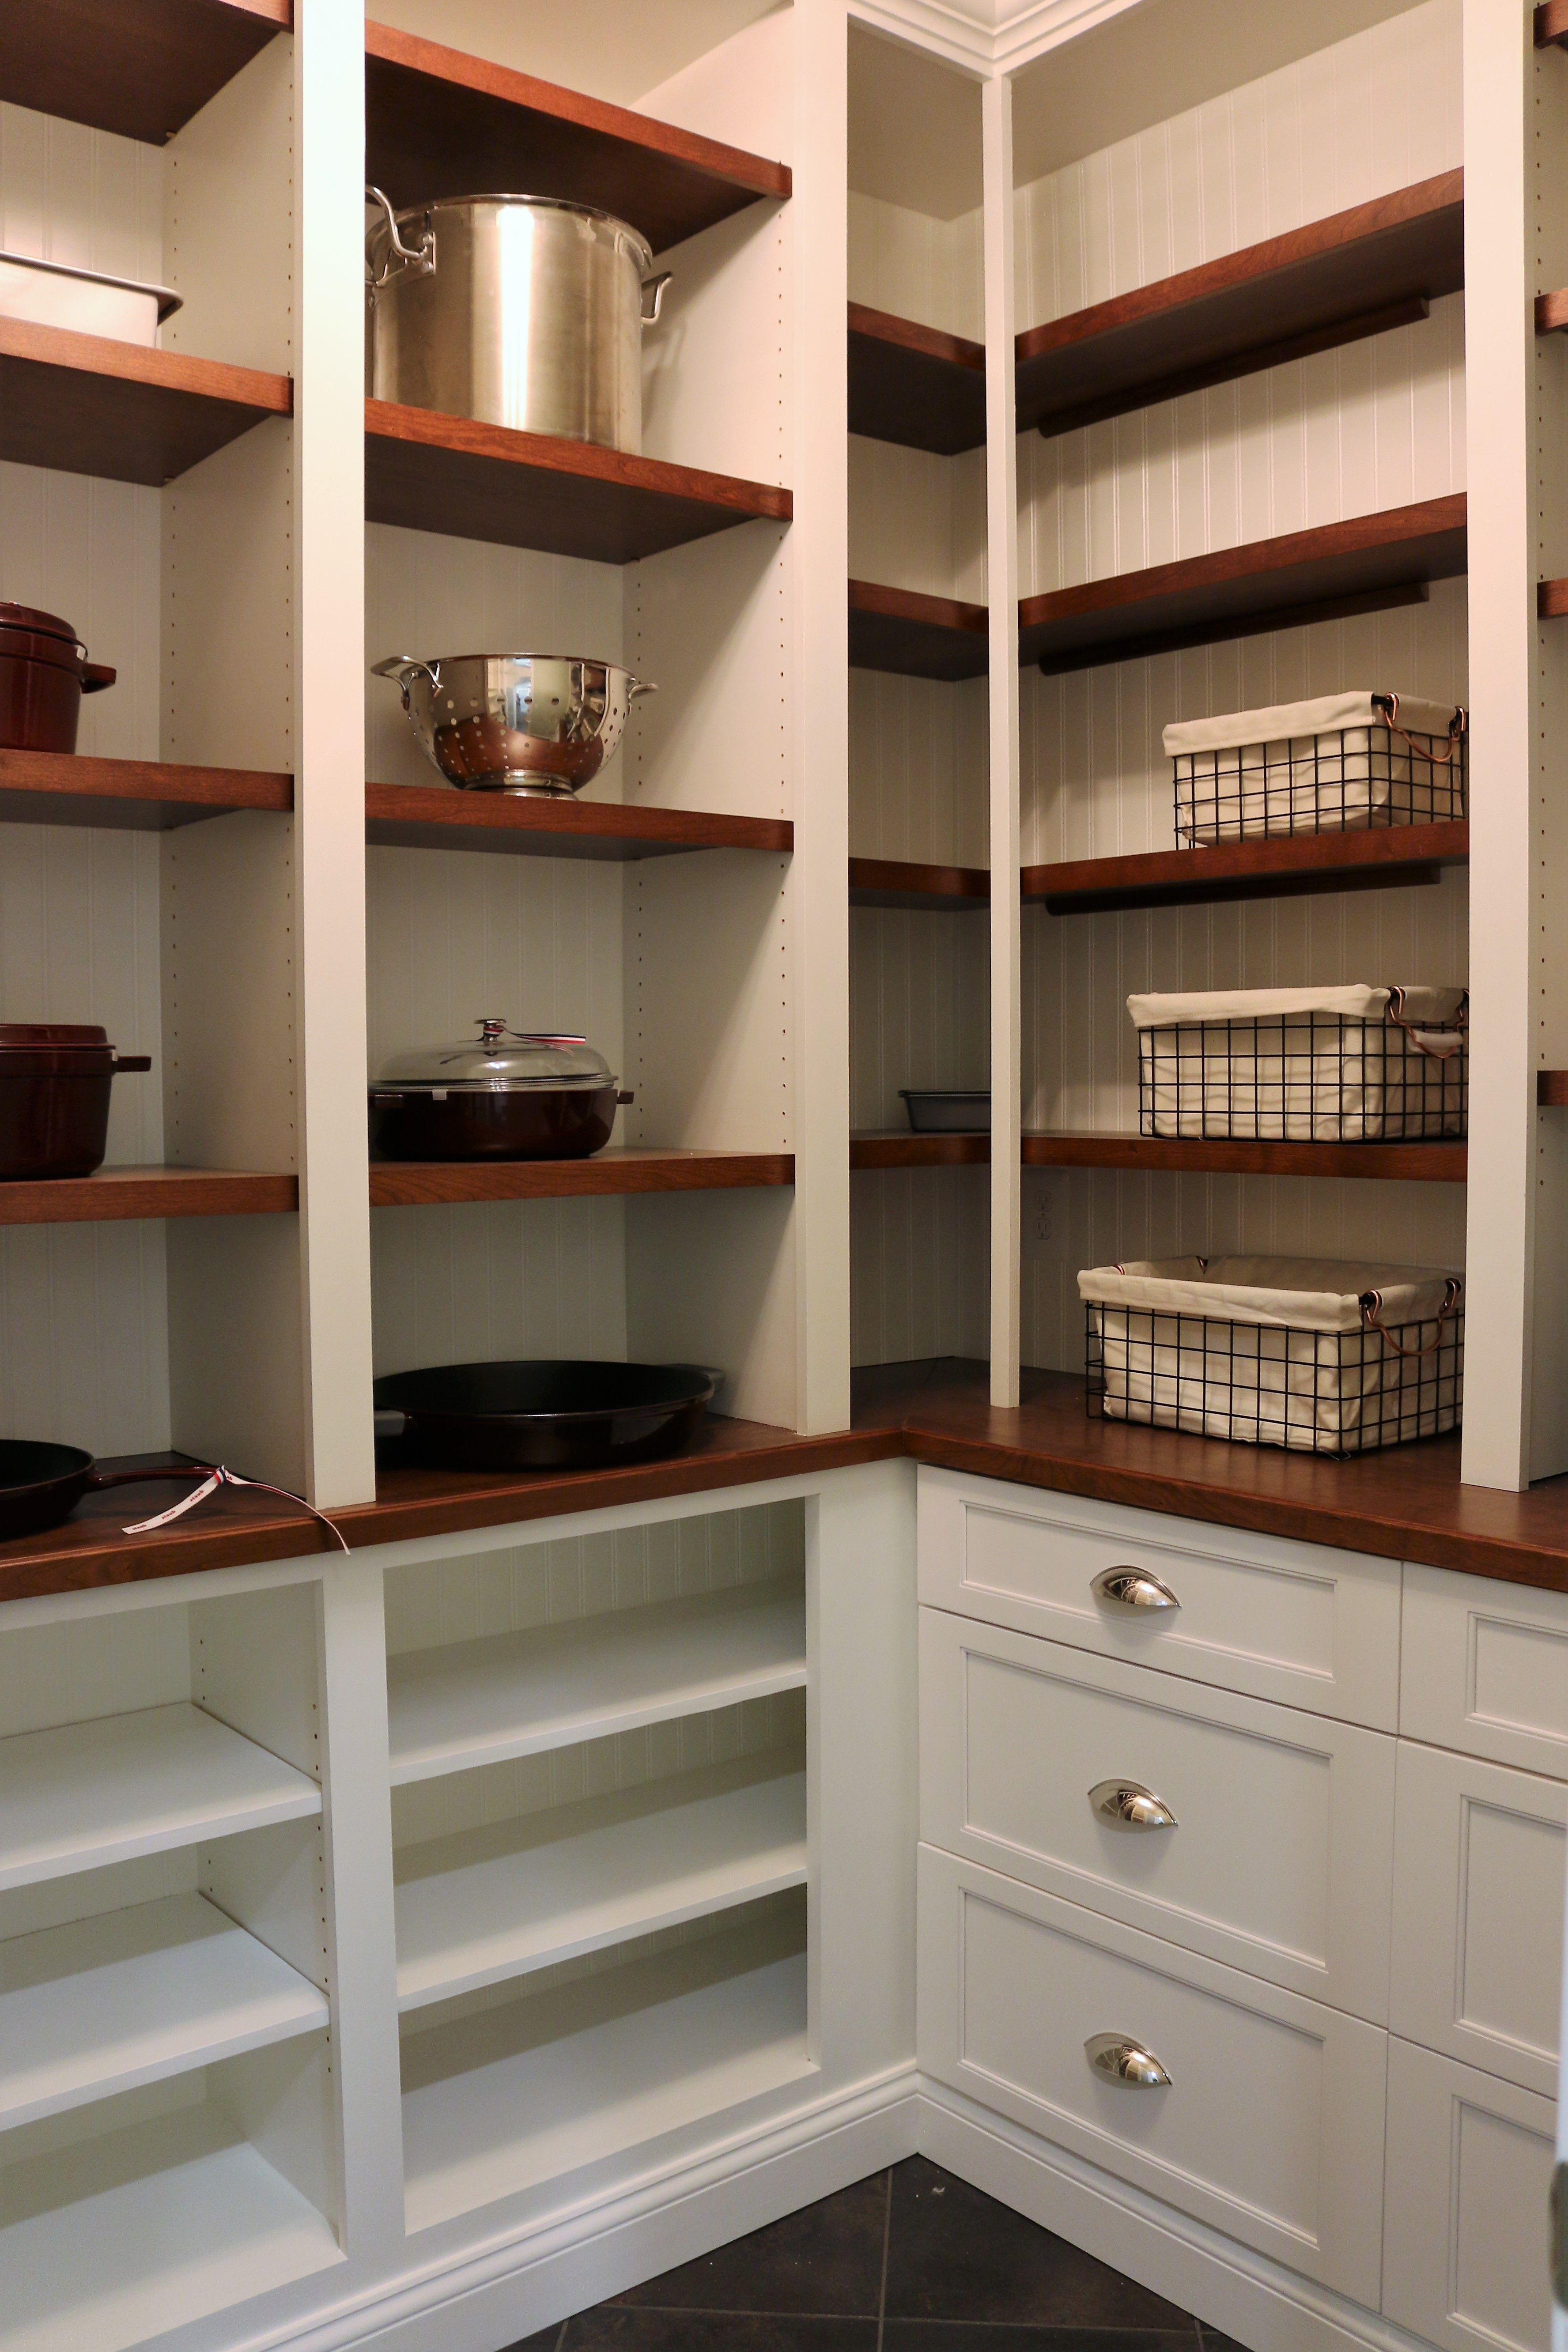 A Newly Expanded Pantry With More Storage Space Created By Adding